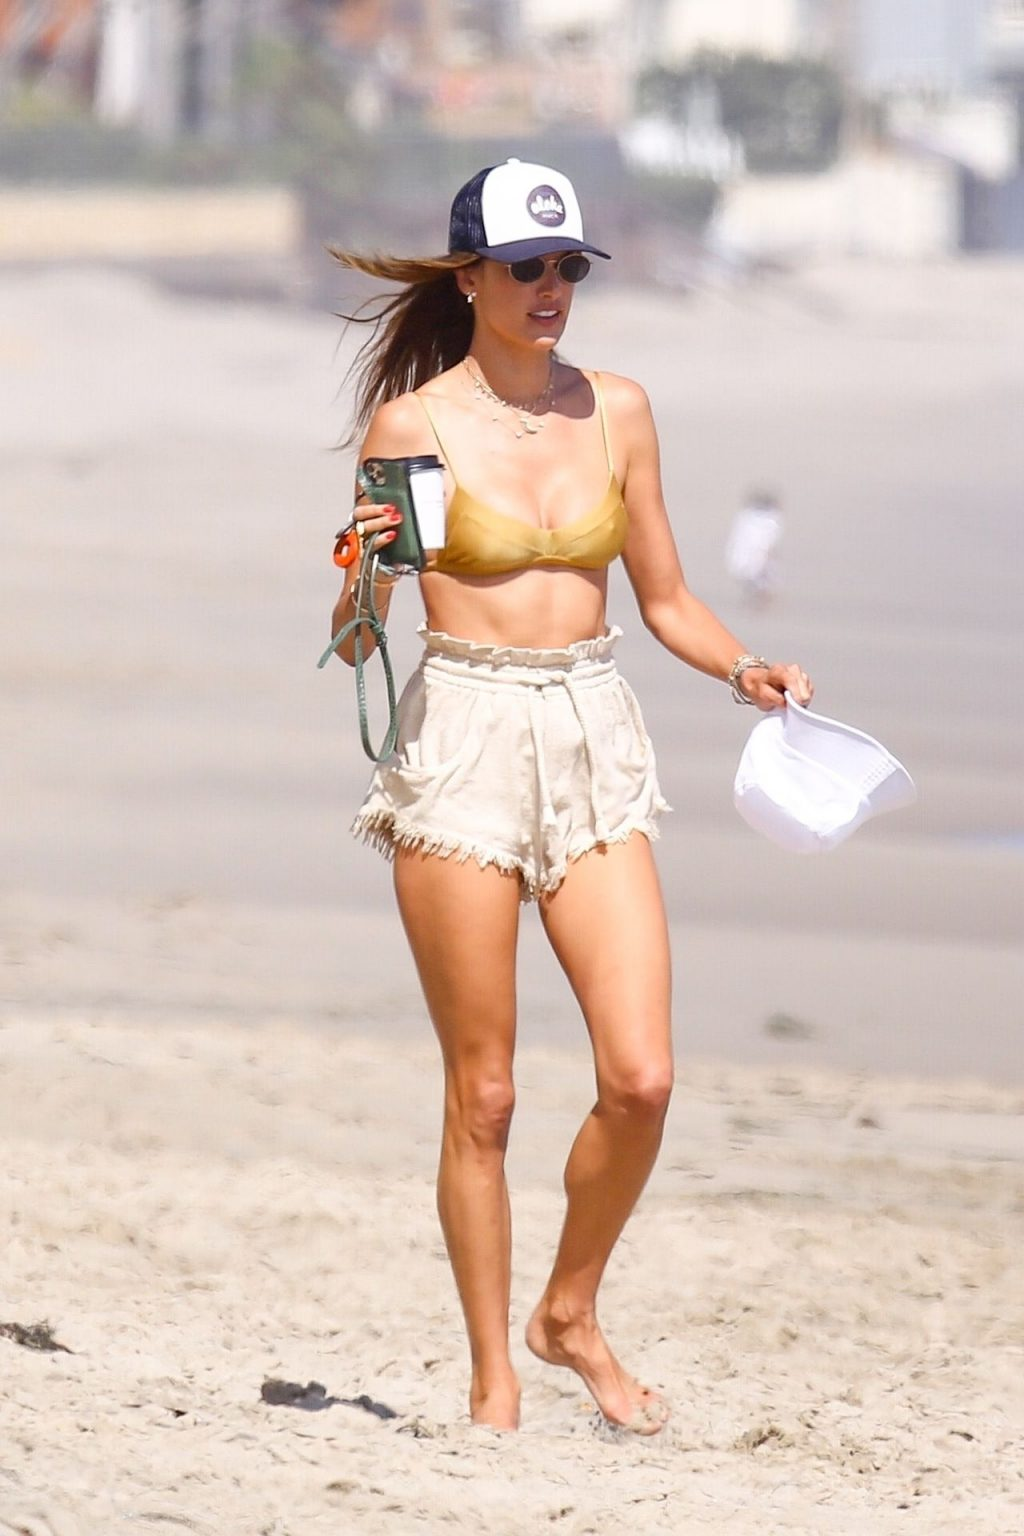 Another Tuesday, Another Beach Day to Alessandra Ambrosio (22 Photos)